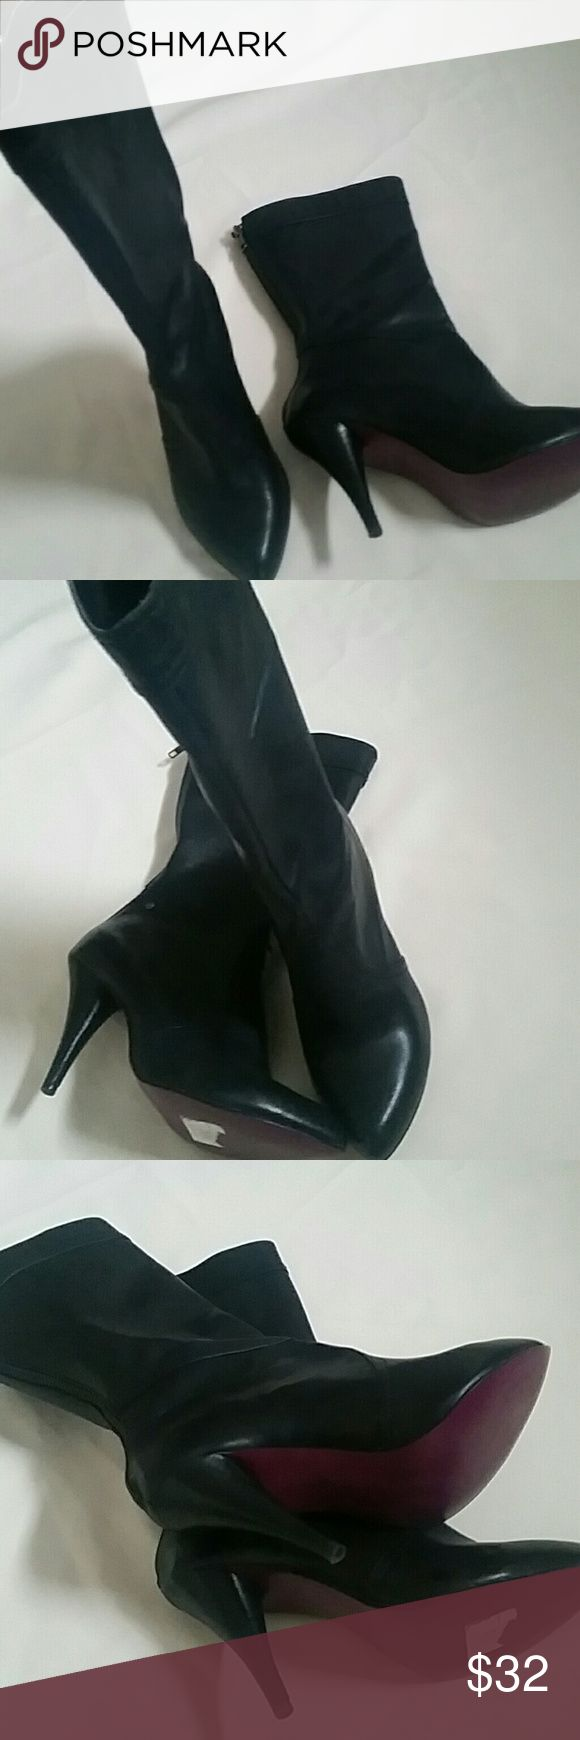 Selling this Bullboxer womens mid calf boots with 3 in heel on Poshmark! My username is: barbofashion. #shopmycloset #poshmark #fashion #shopping #style #forsale #Bullboxer  #Shoes